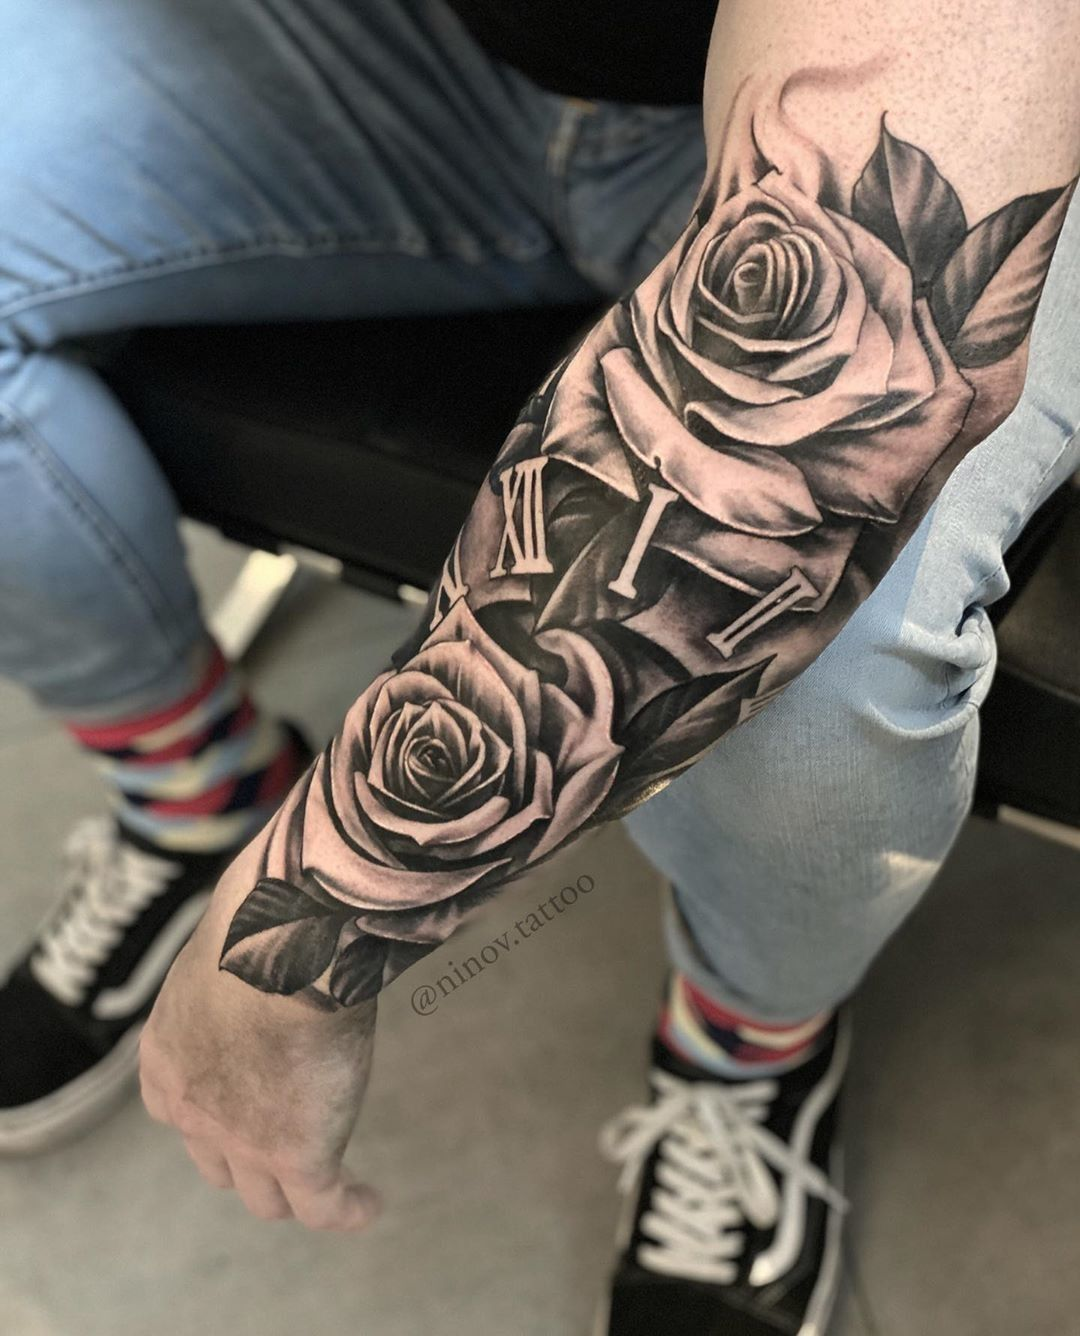 Pin By Davidbgh On Pp In 2020 Rose Tattoos For Men Sleeve Tattoos For Women Tattoos For Guys